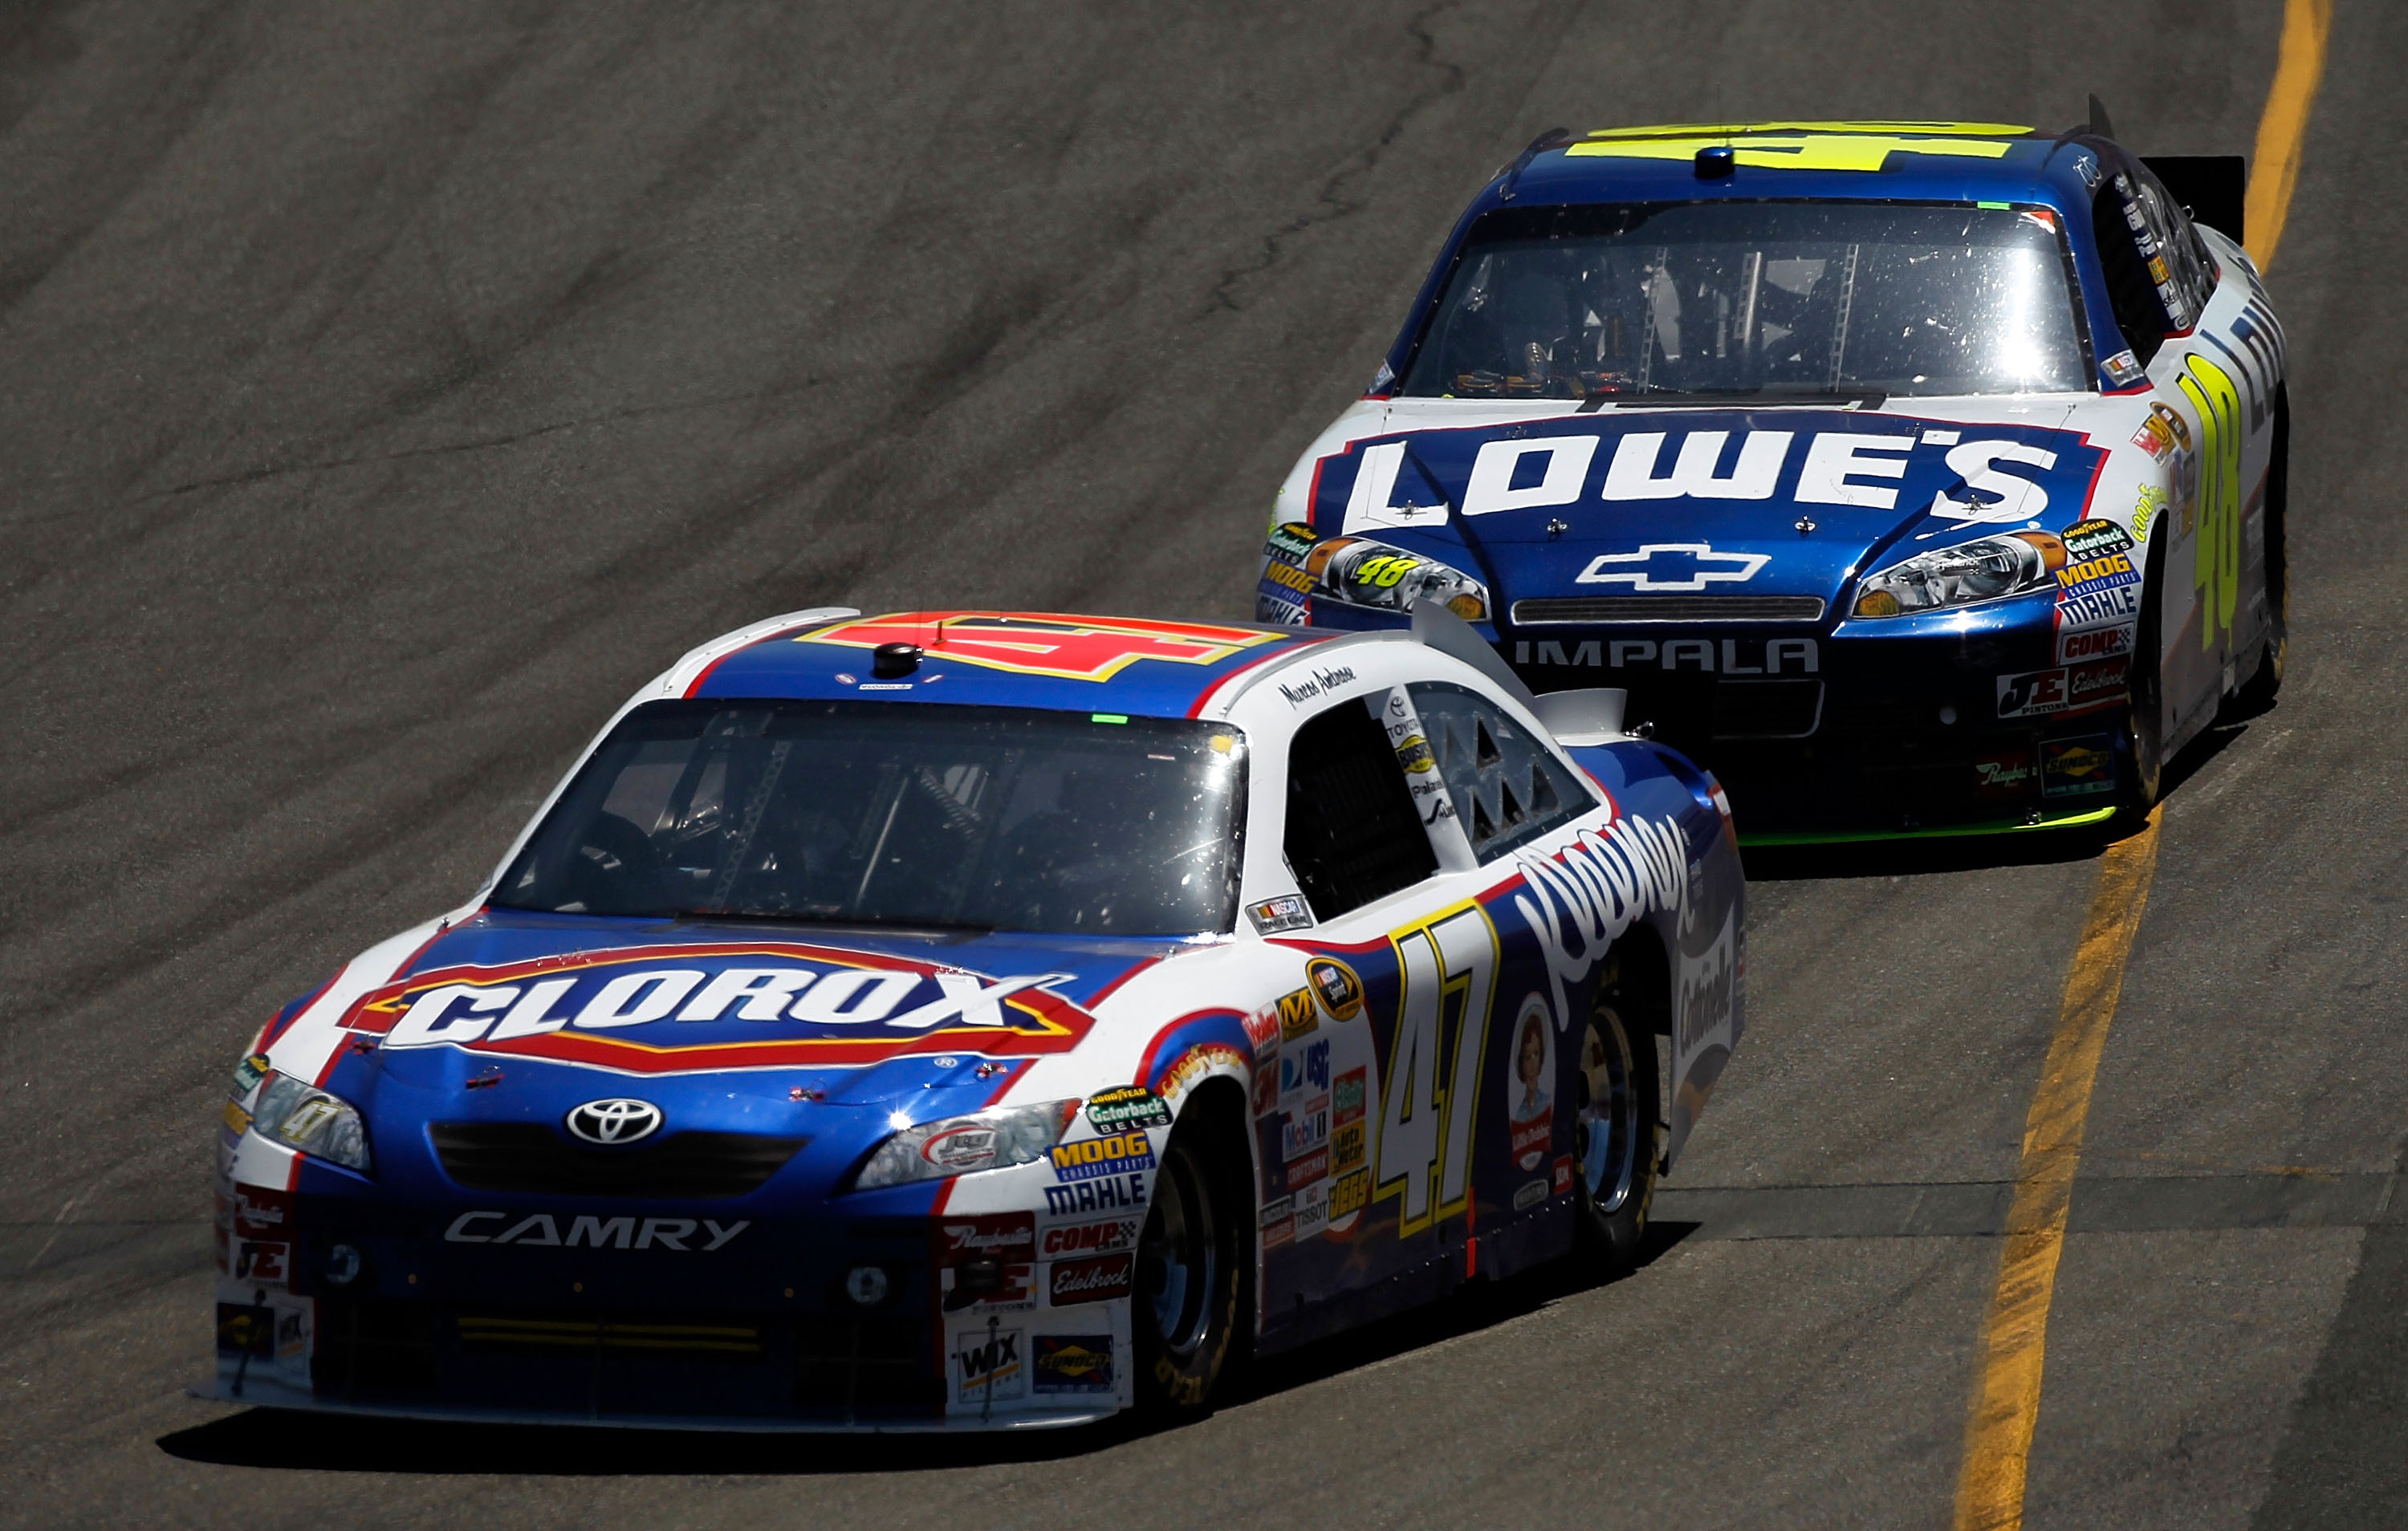 SONOMA, CA - JUNE 20:  Marcos Ambrose, driver of the #47 Clorox Toyota, leads Jimmie Johnson, driver of the #48 Lowe's Chevrolet, during the NASCAR Sprint Cup Series Toyota/Save Mart 350 at Infineon Raceway on June 20, 2010 in Sonoma, California.  (Photo